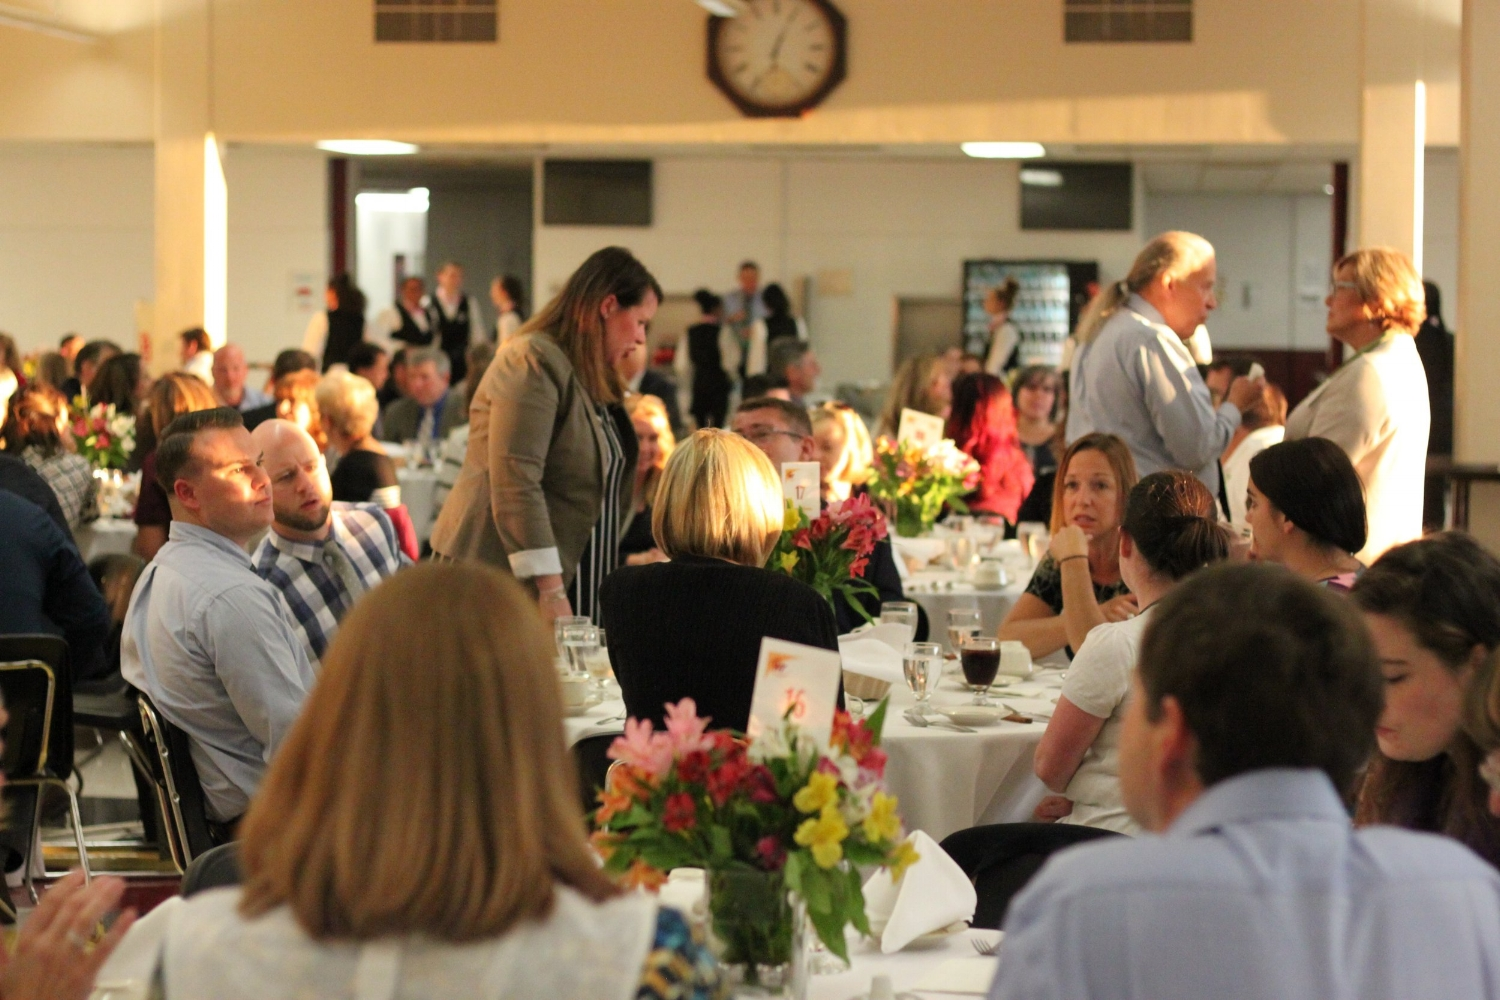 Staff and Examiners mingle at Welcome Dinner